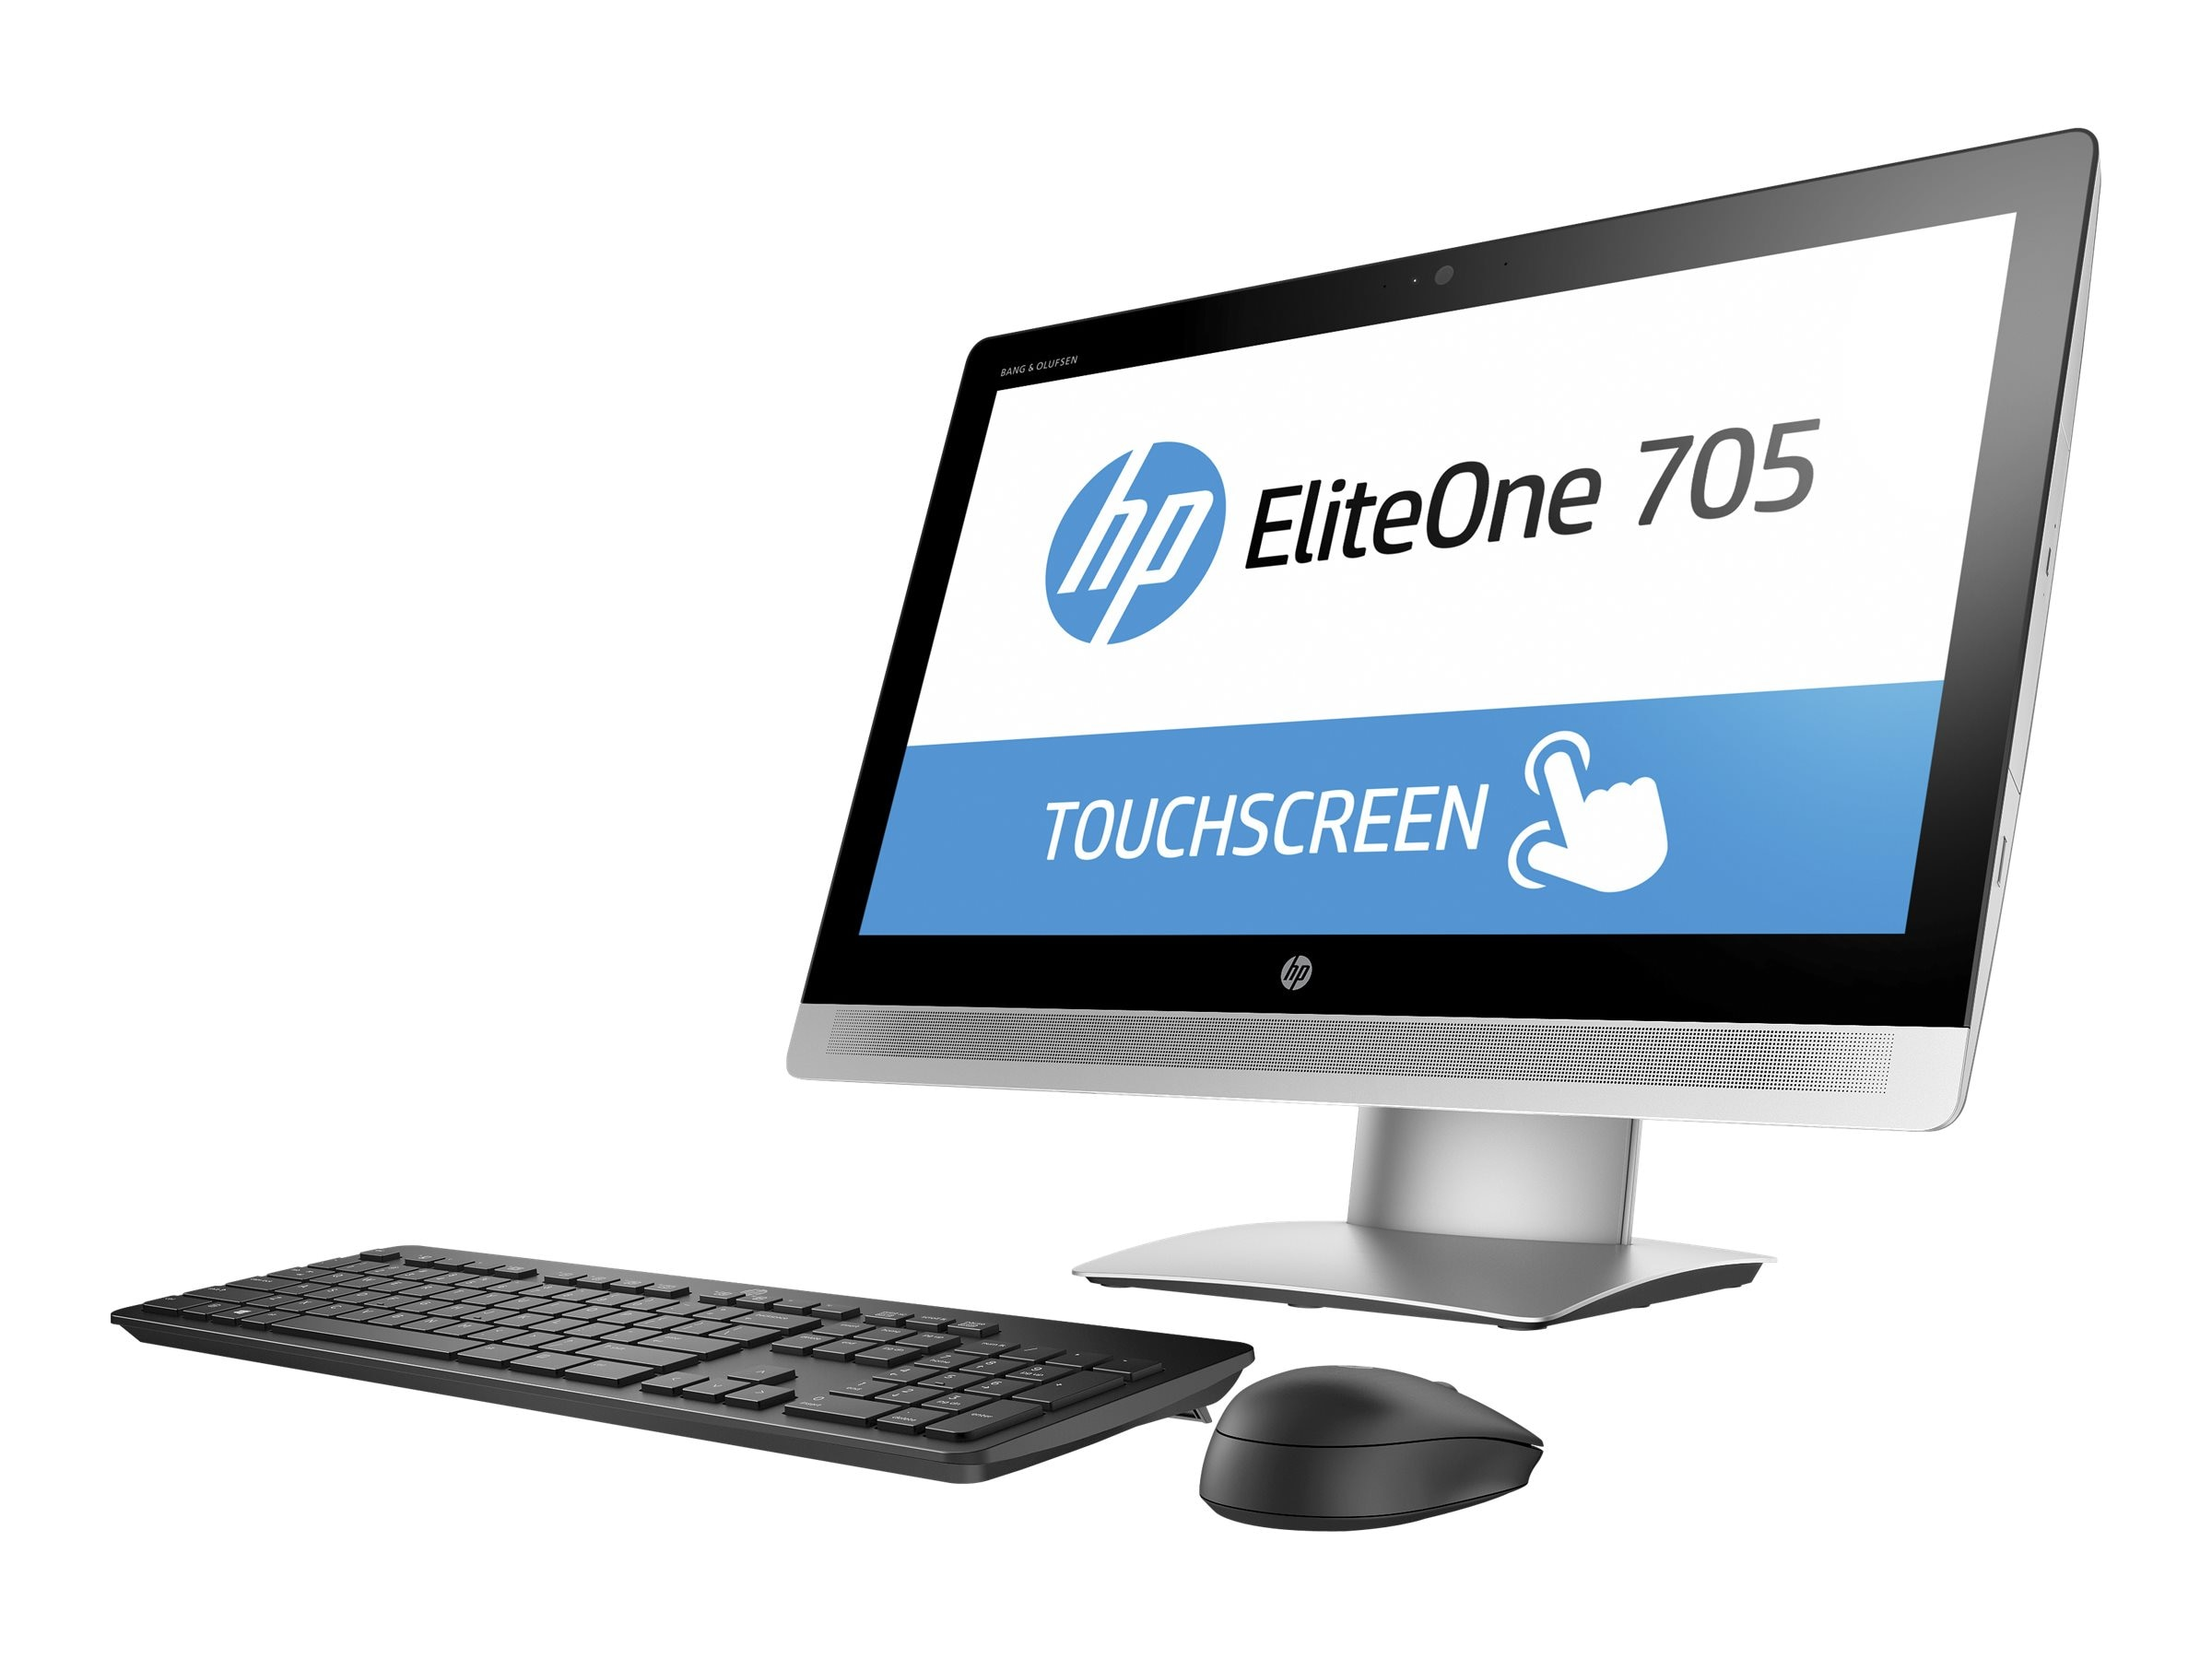 HP EliteOne 705 G2 AIO Pro A4-8350B 3.5GHz 4GB 500GB DVD-RW ac BT FR WC 23 HD MT W7P64-10P, P5U96UT#ABA, 30722645, Desktops - All-in-One